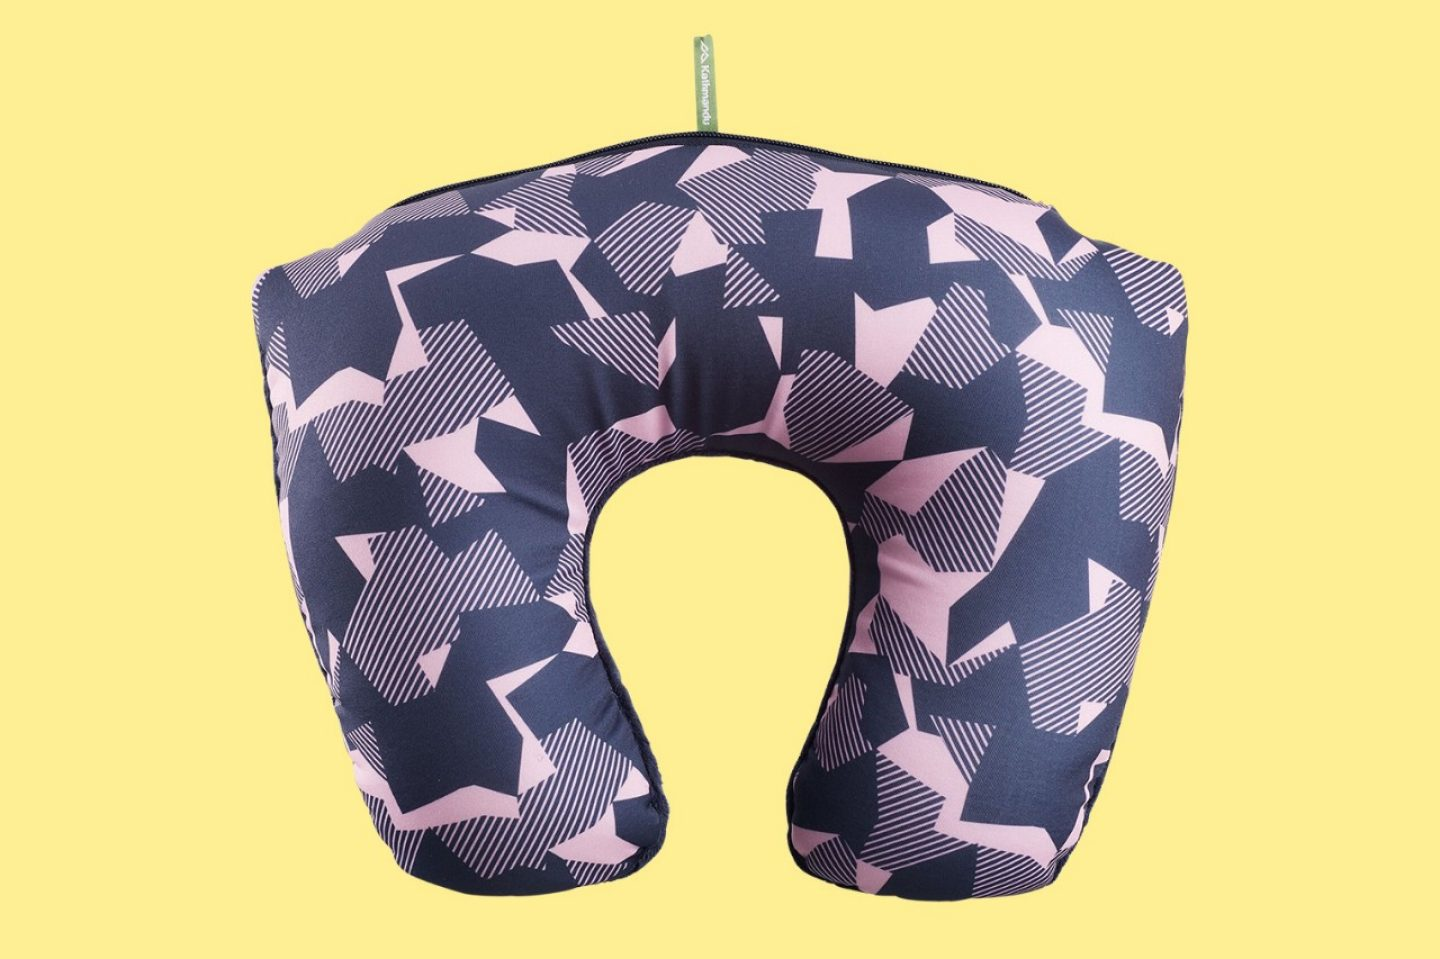 If You Like To Have Options: Kathmandu 2-In-1 Travel Pillow, $40